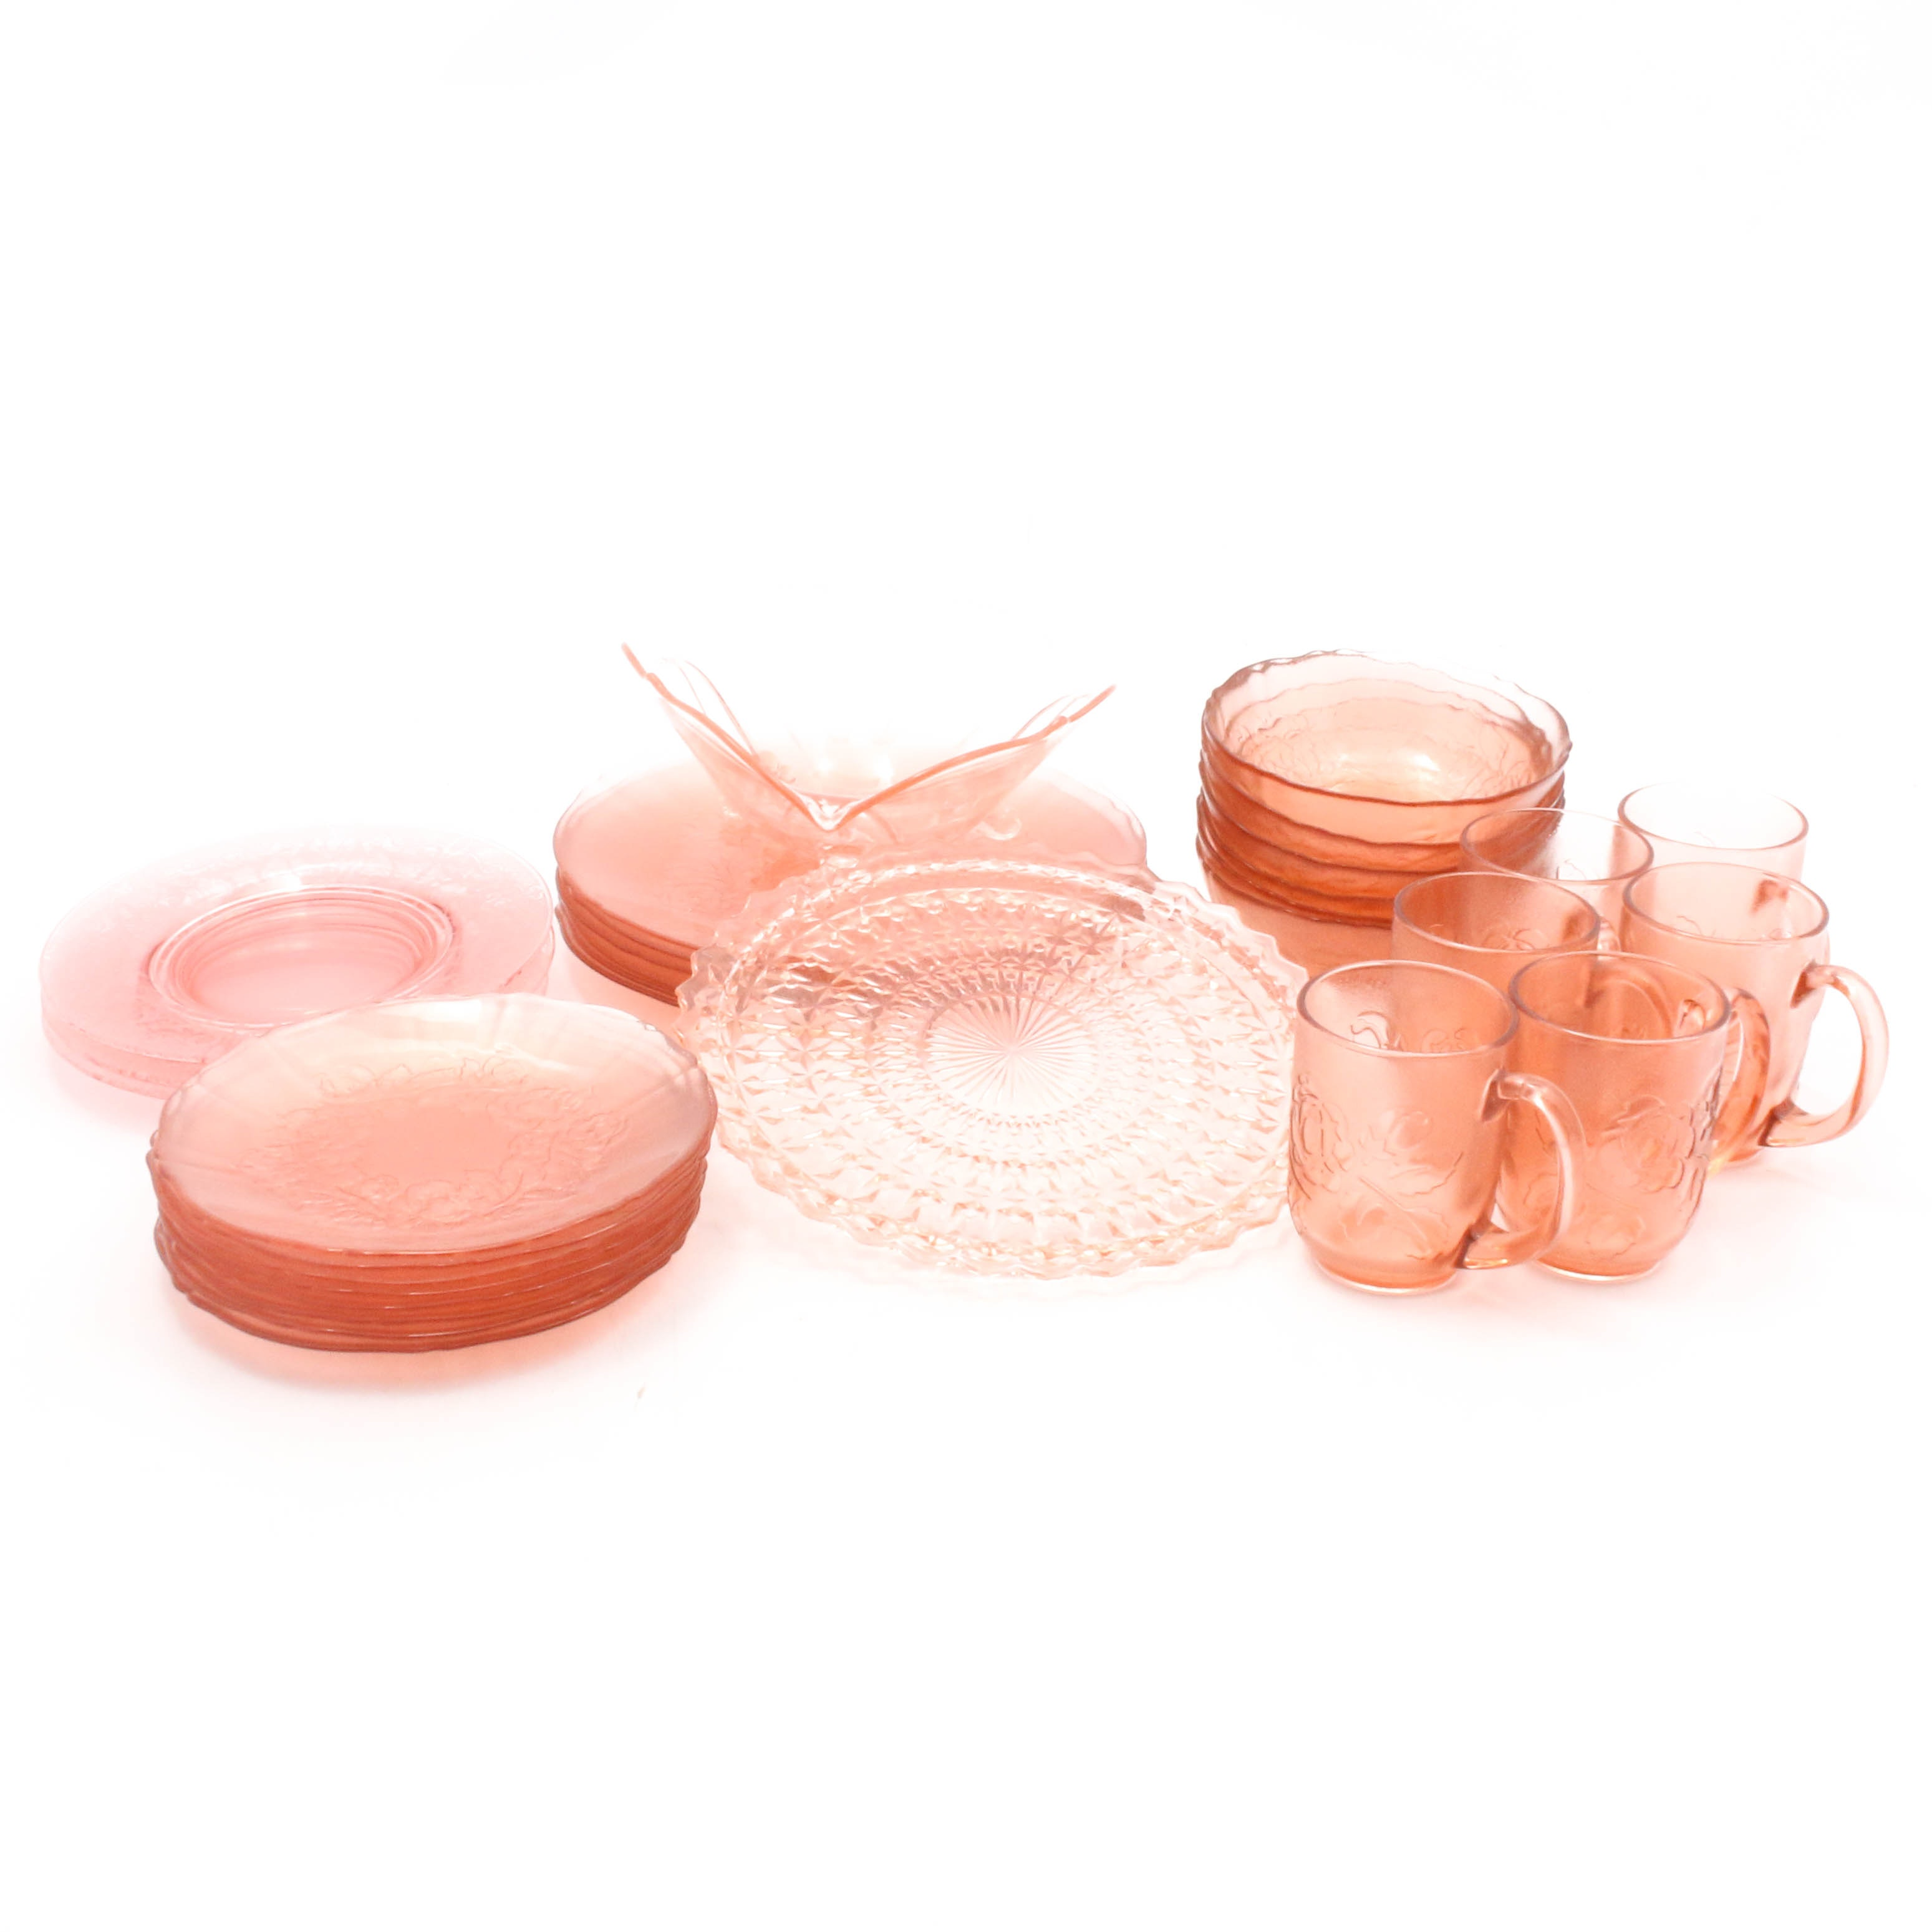 Blush Pink Glass Tableware Featuring Cambridge and Arcoroc